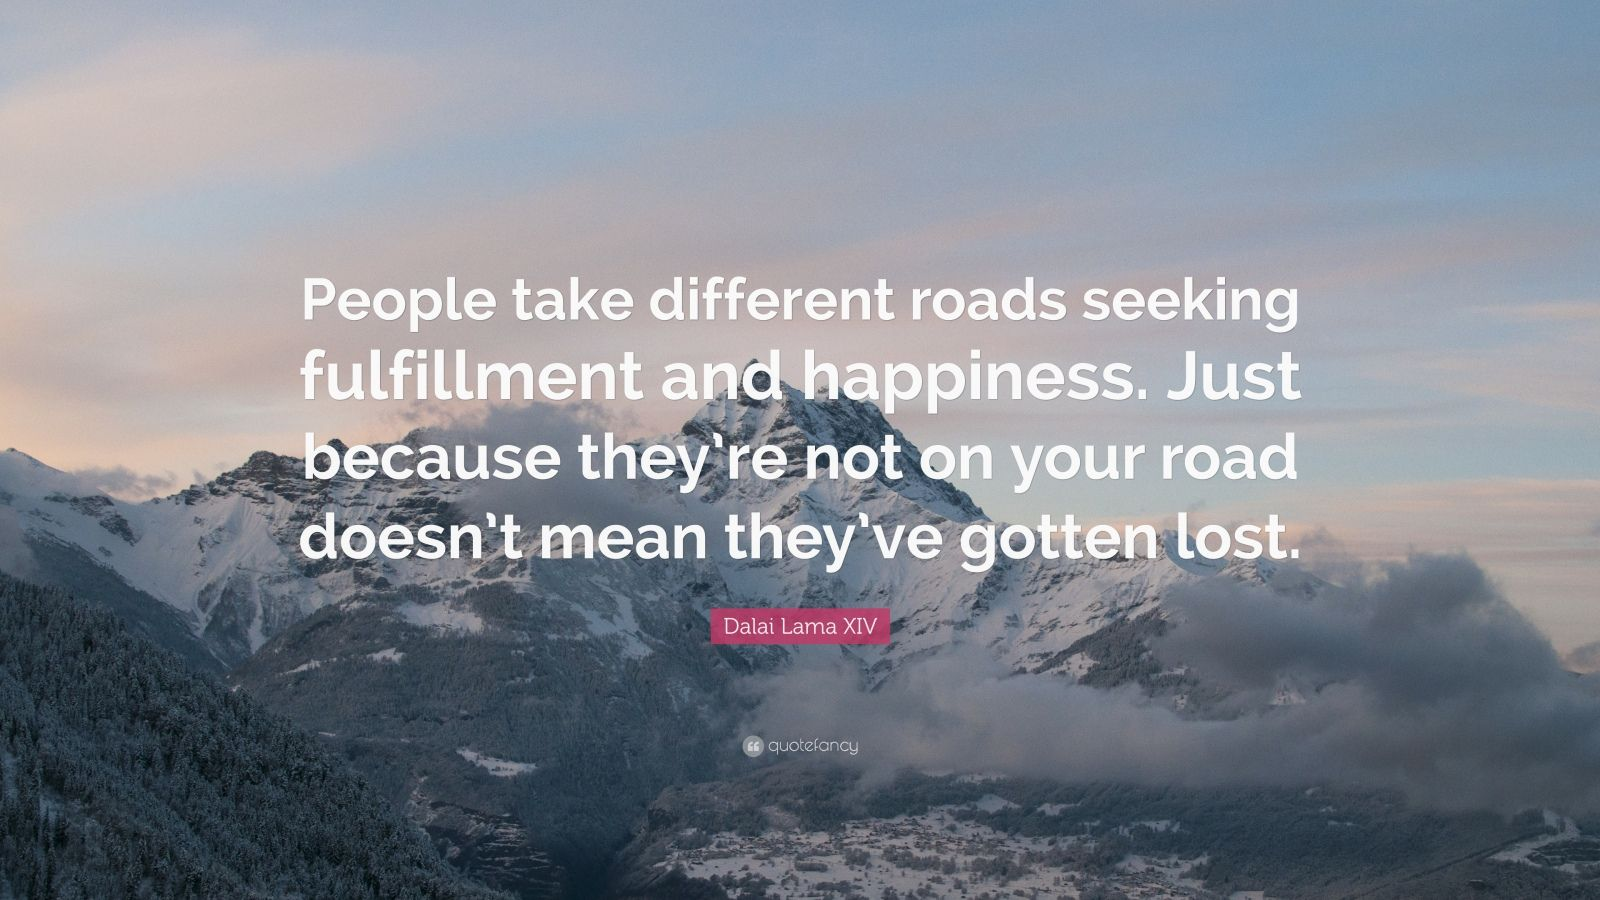 people take different roads seeking fulfillment Motivational quotes,inspirational quotes, people take different roads seeking fulfillment and happiness just because they're not on your road doesn't mean they've gotten lost.